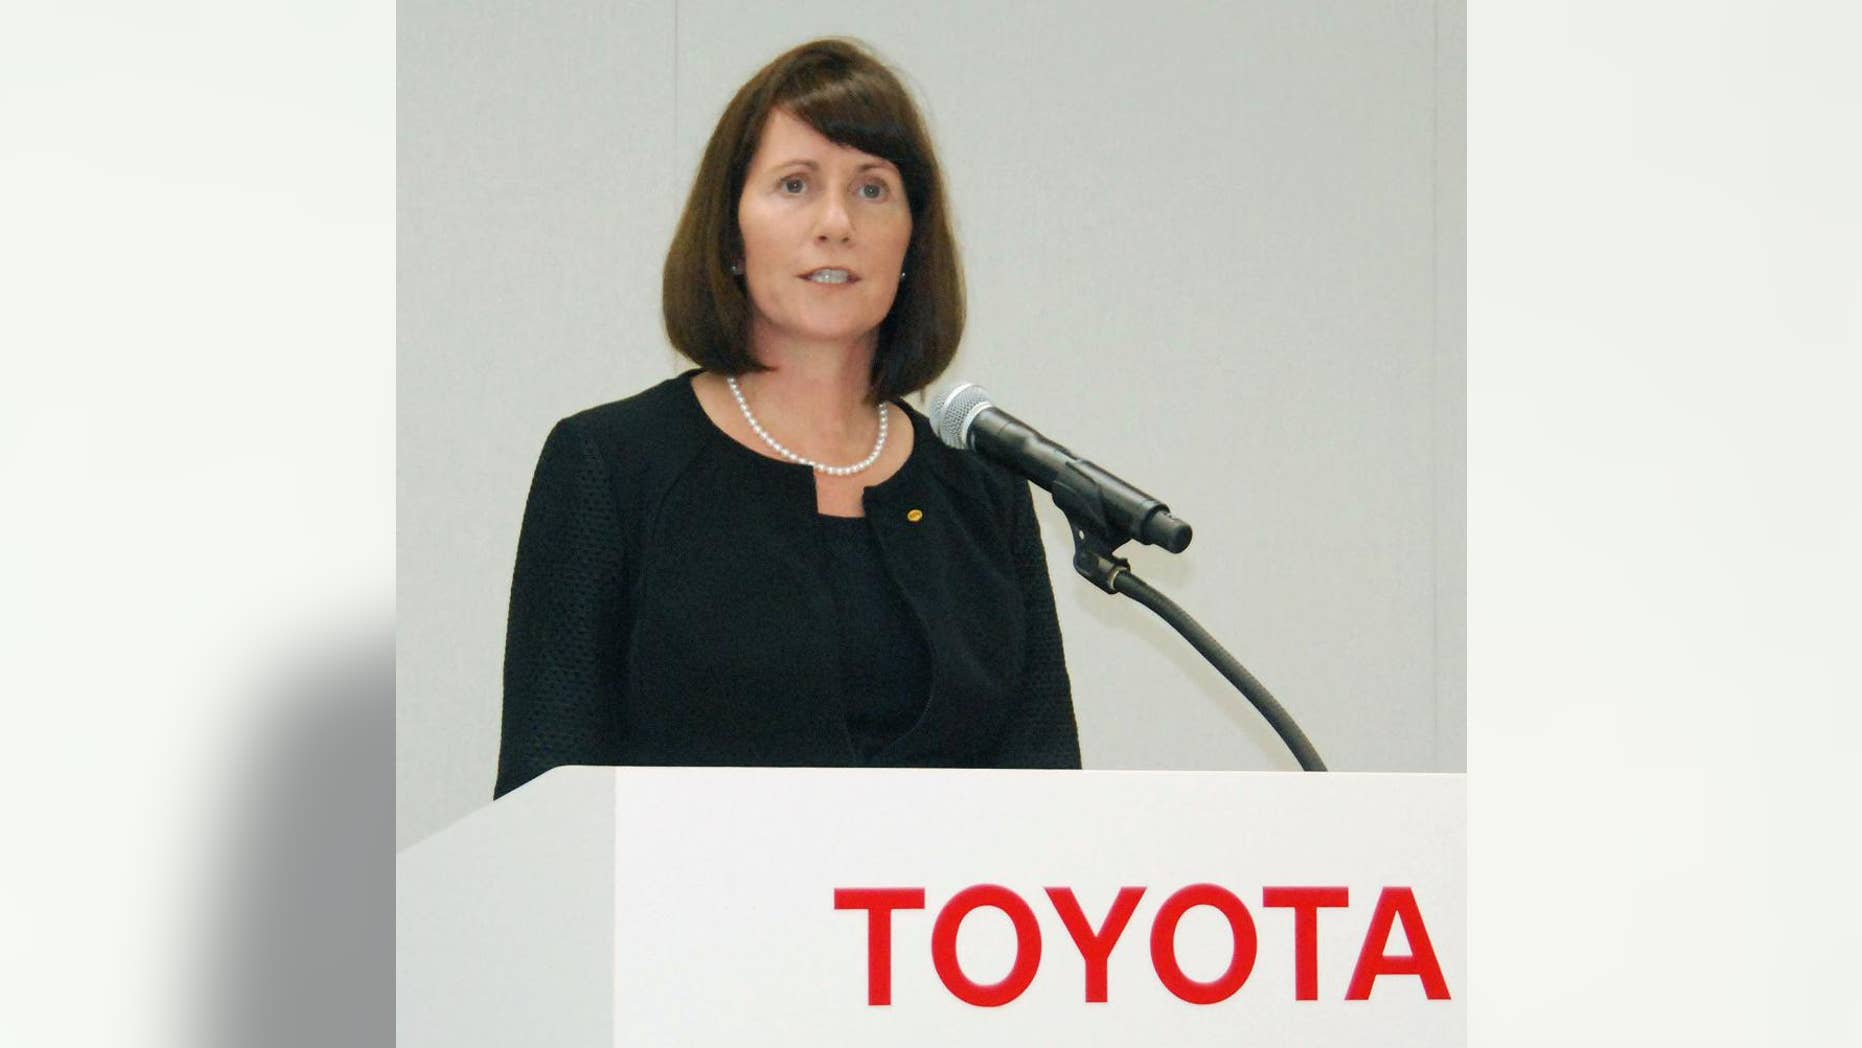 FILE - In this July 17, 2015 file photo, Toyota Motor Corp.'s head of public relations Julie Hamp speaks during a press conference in Toyota, central Japan.  Toyota said Wednesday, July 1, 2015, the US executive arrested in Japan on suspicion of drug law violations has resigned. (Tsutomu Agechi/Kyodo News via AP, File) JAPAN OUT, CREDIT MANDATORY